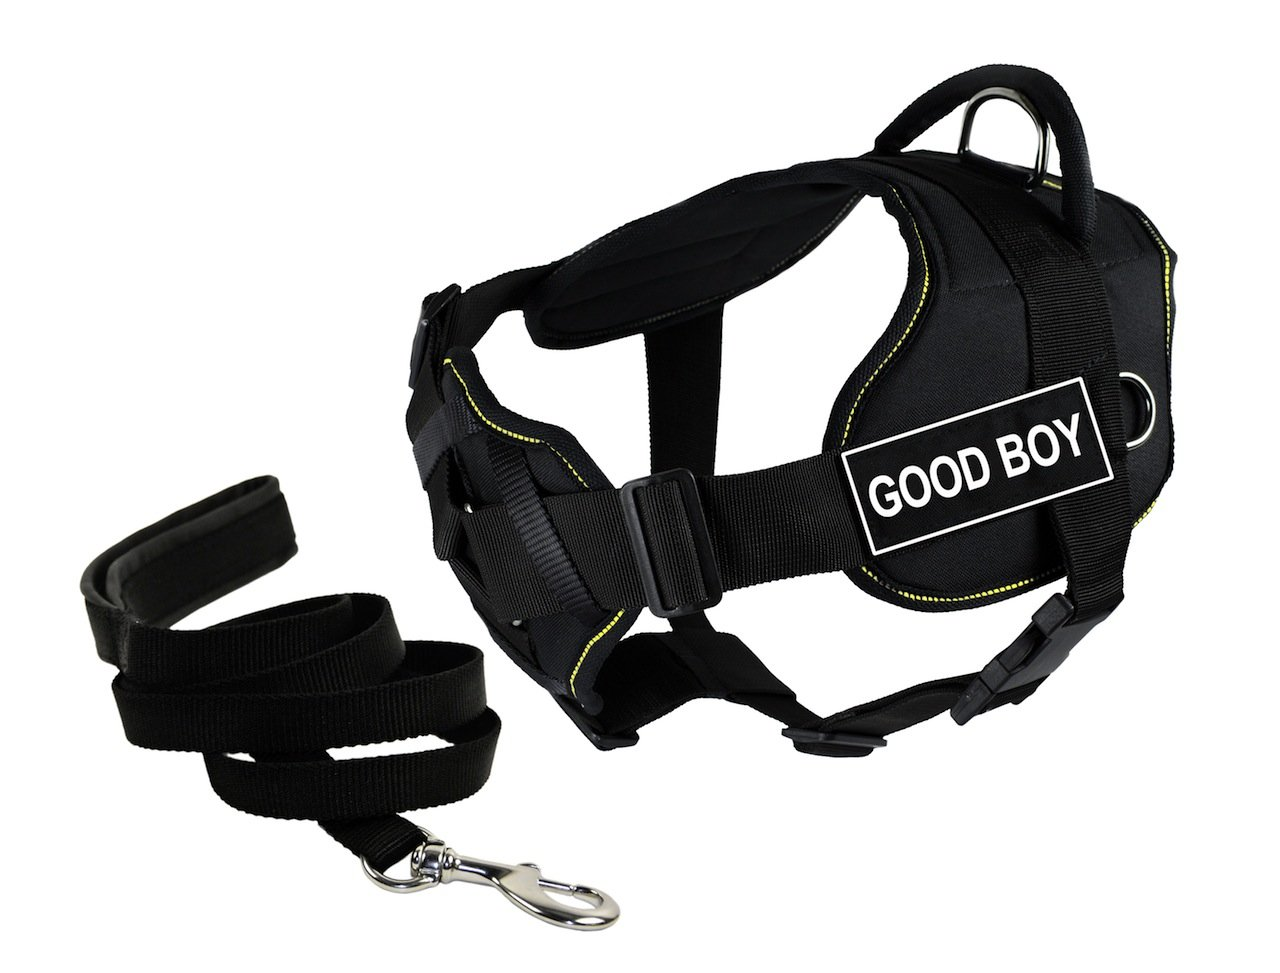 Dean & Tyler's DT Fun Chest Support Good BOY  Harness, Small, with 6 ft Padded Puppy Leash.